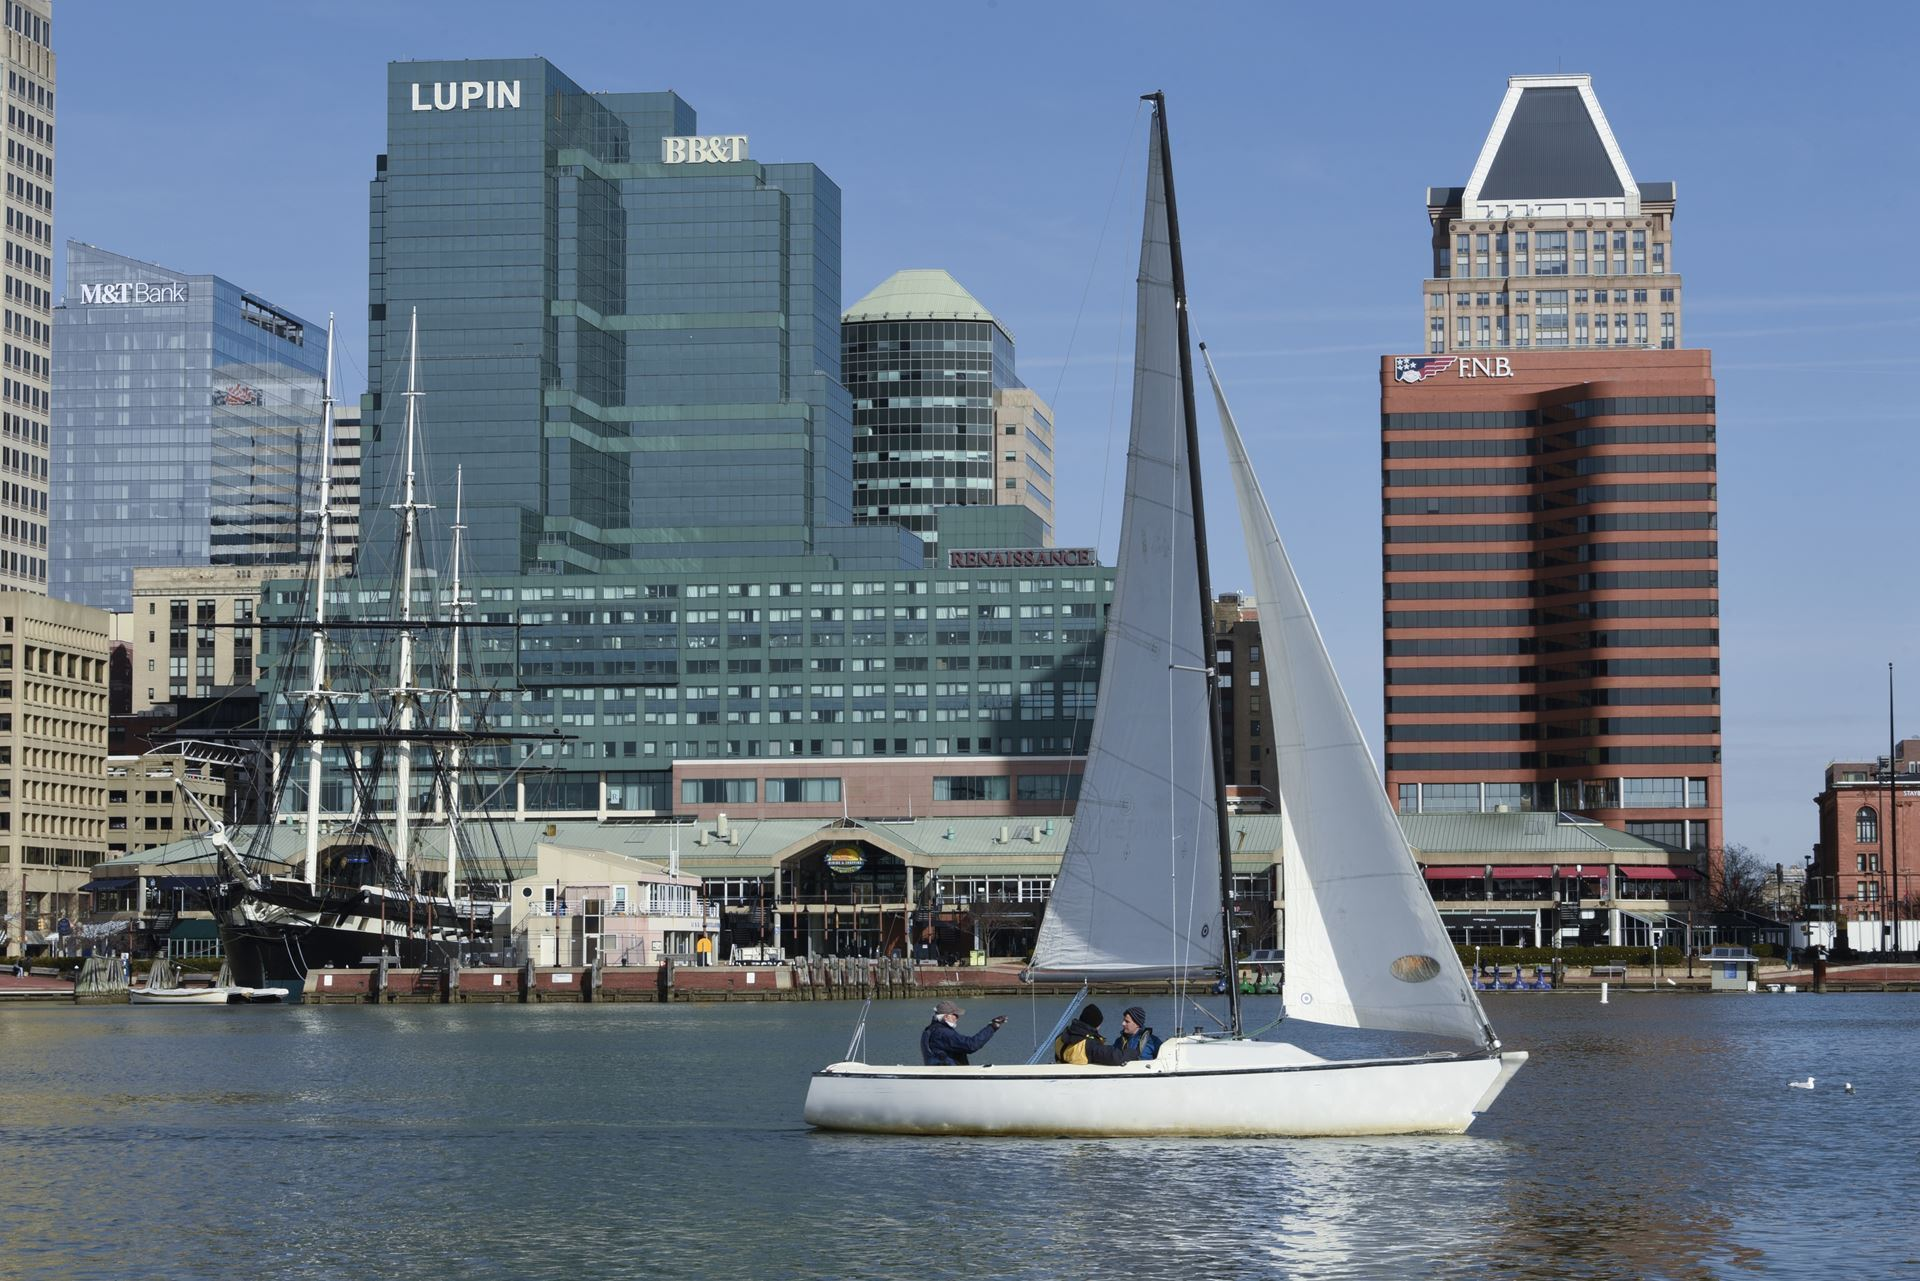 Sailing in the Inner Harbor